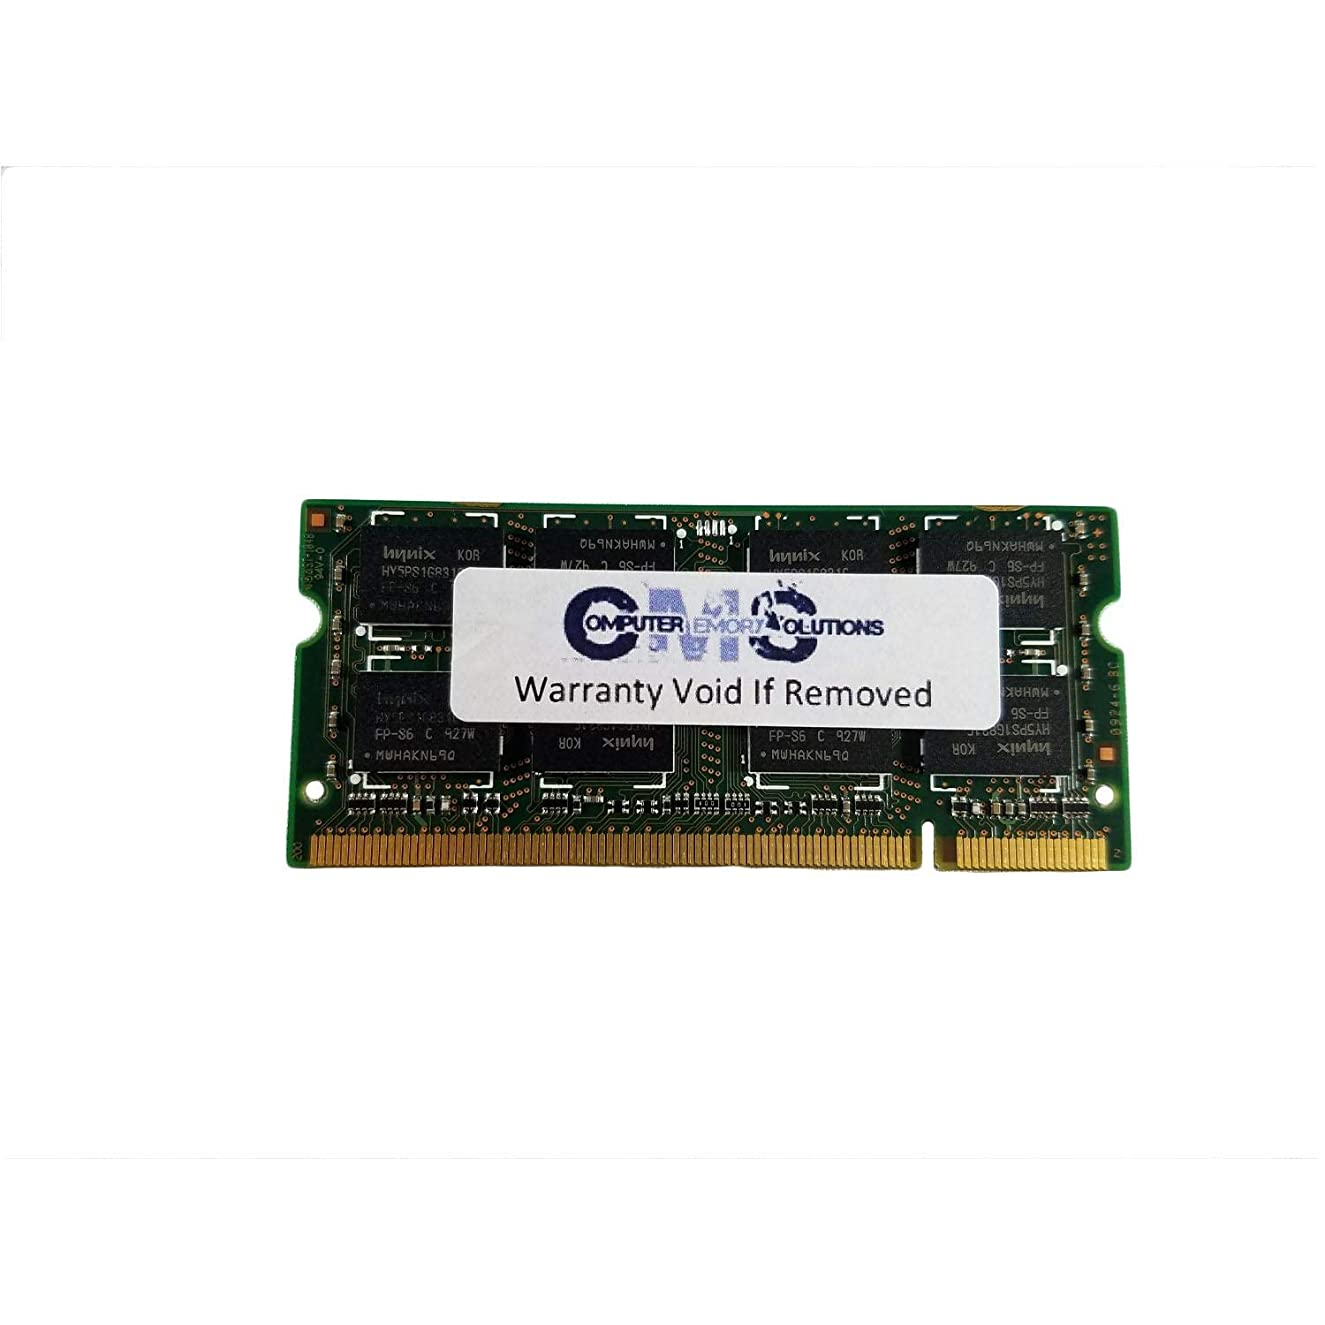 2Gb Sodimm Ram Memory Compatible with Asus Eee Pc 1001P, 1001Px, 1002Ha, 1002Hag Ddr2 Sodimm By CMS (A38)